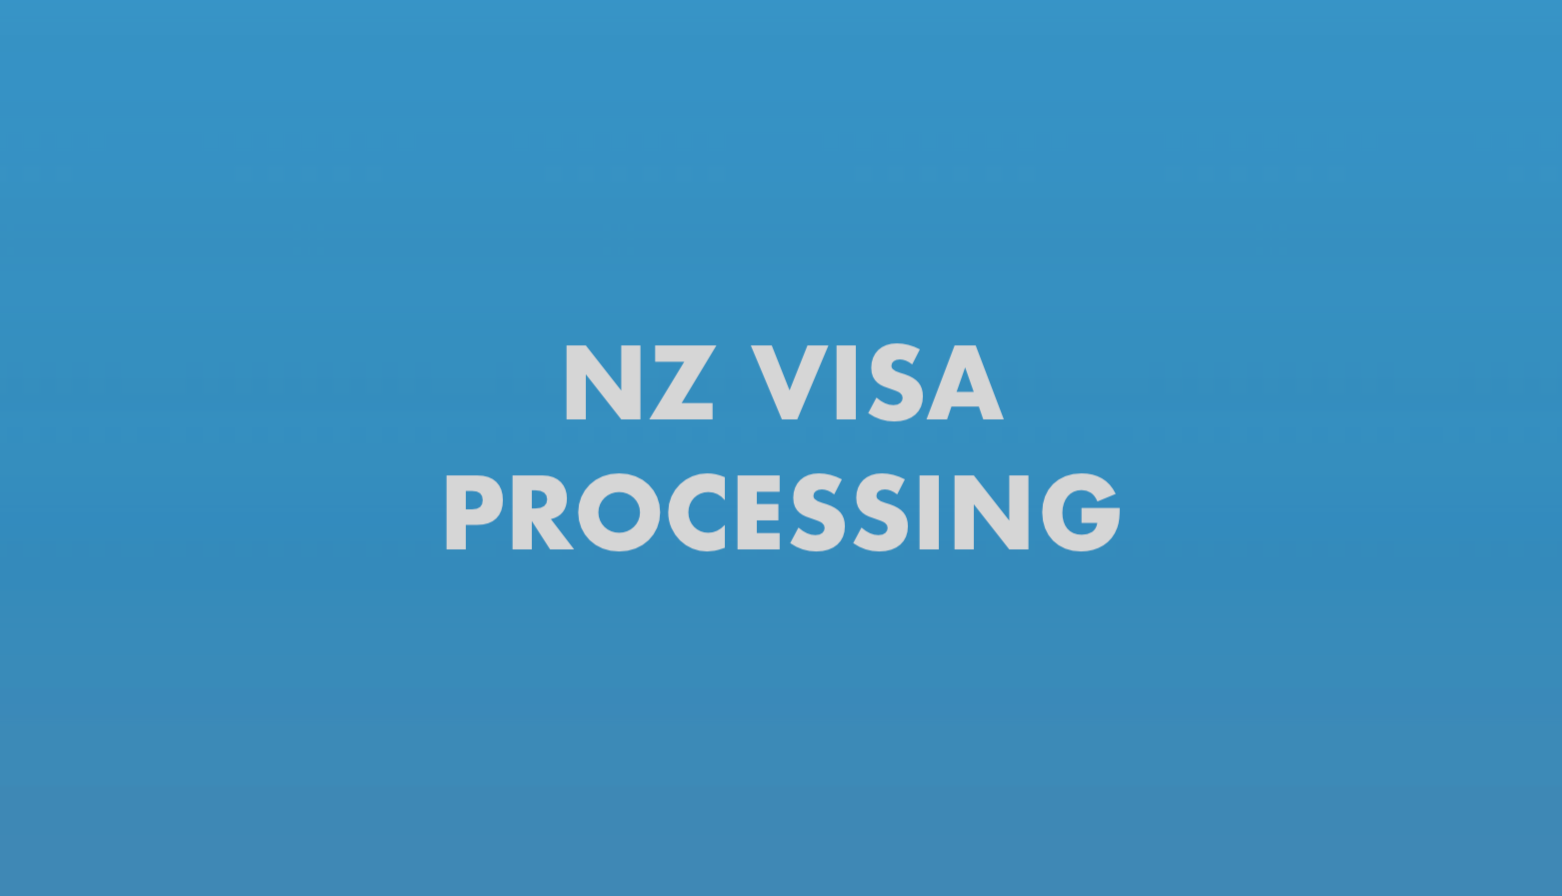 NZ Visa Processing